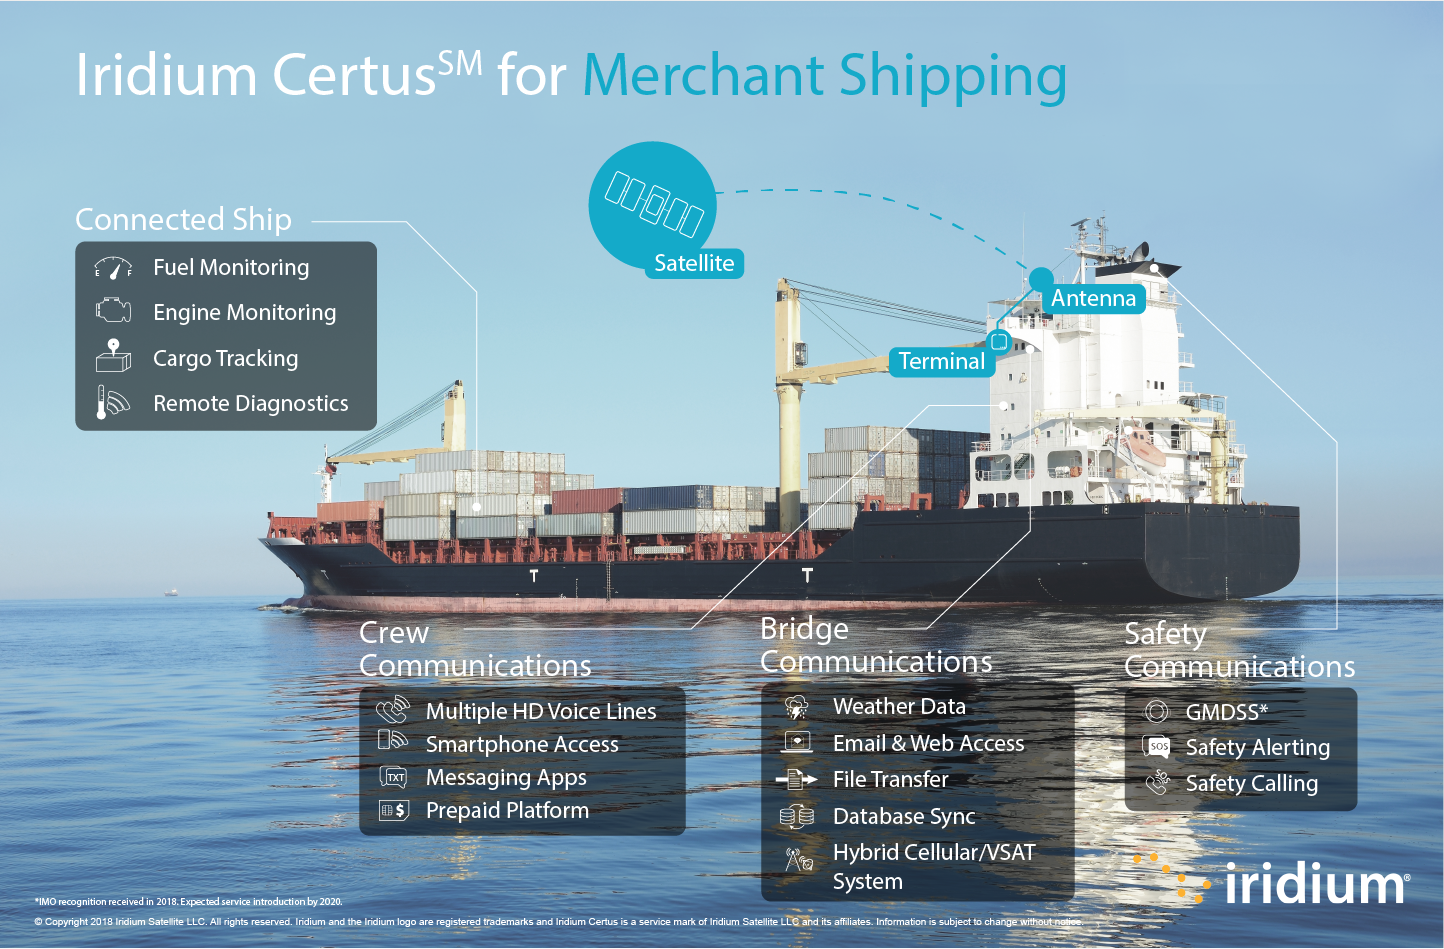 Infographic showing use cases for Iridium Certus within merchant shipping.